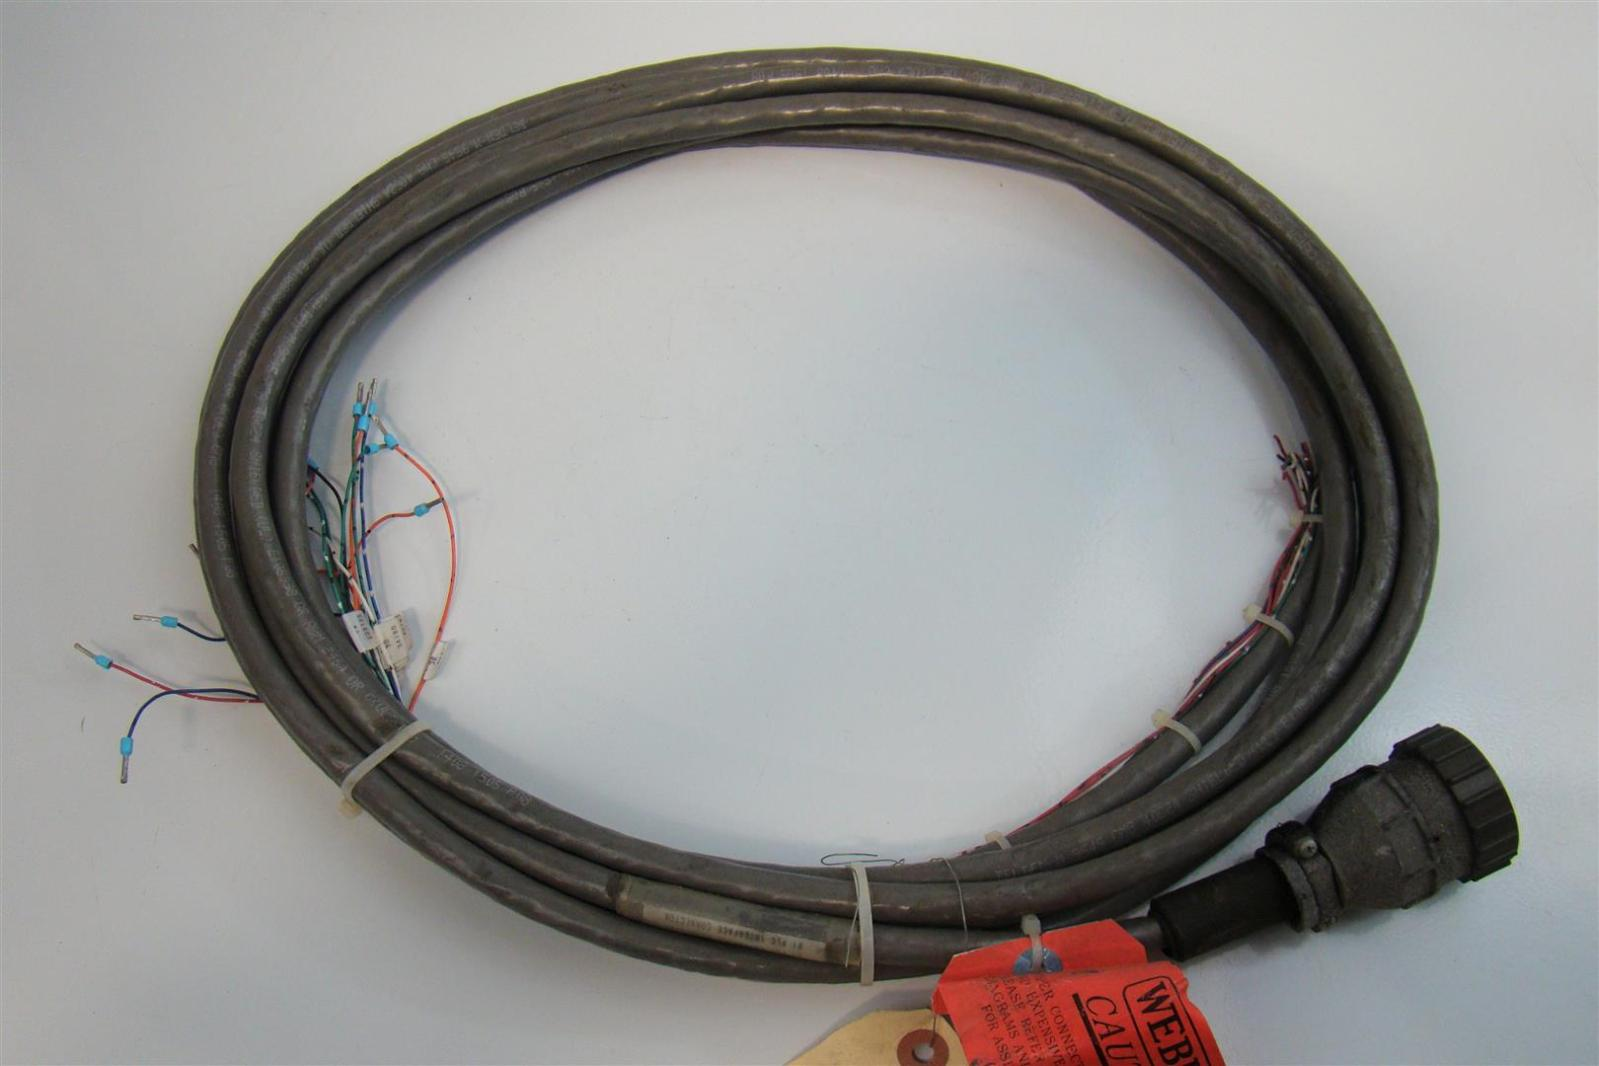 Fantastic 3 Wire Rtd Cable Specification Images - The Wire - magnox.info